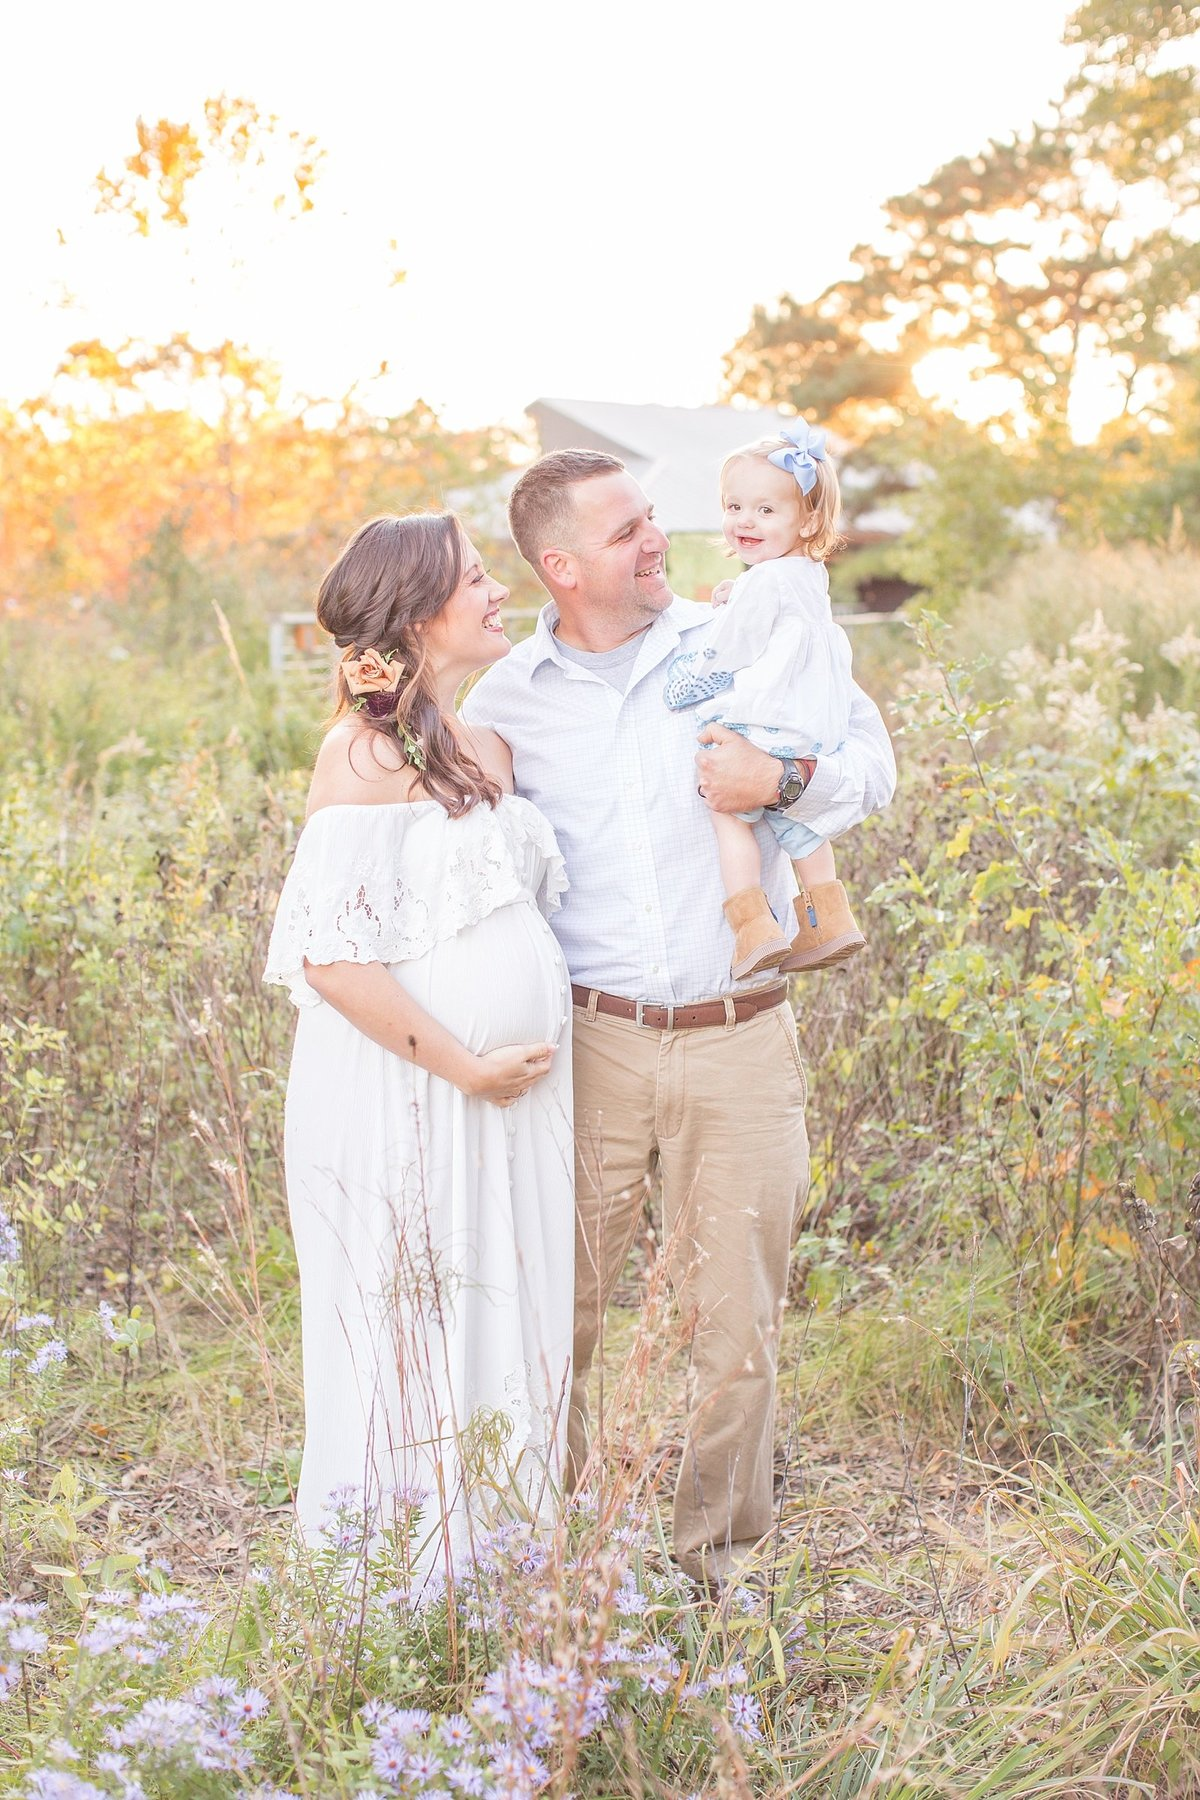 Maryland-maternity-session-jess-becker-photography-10